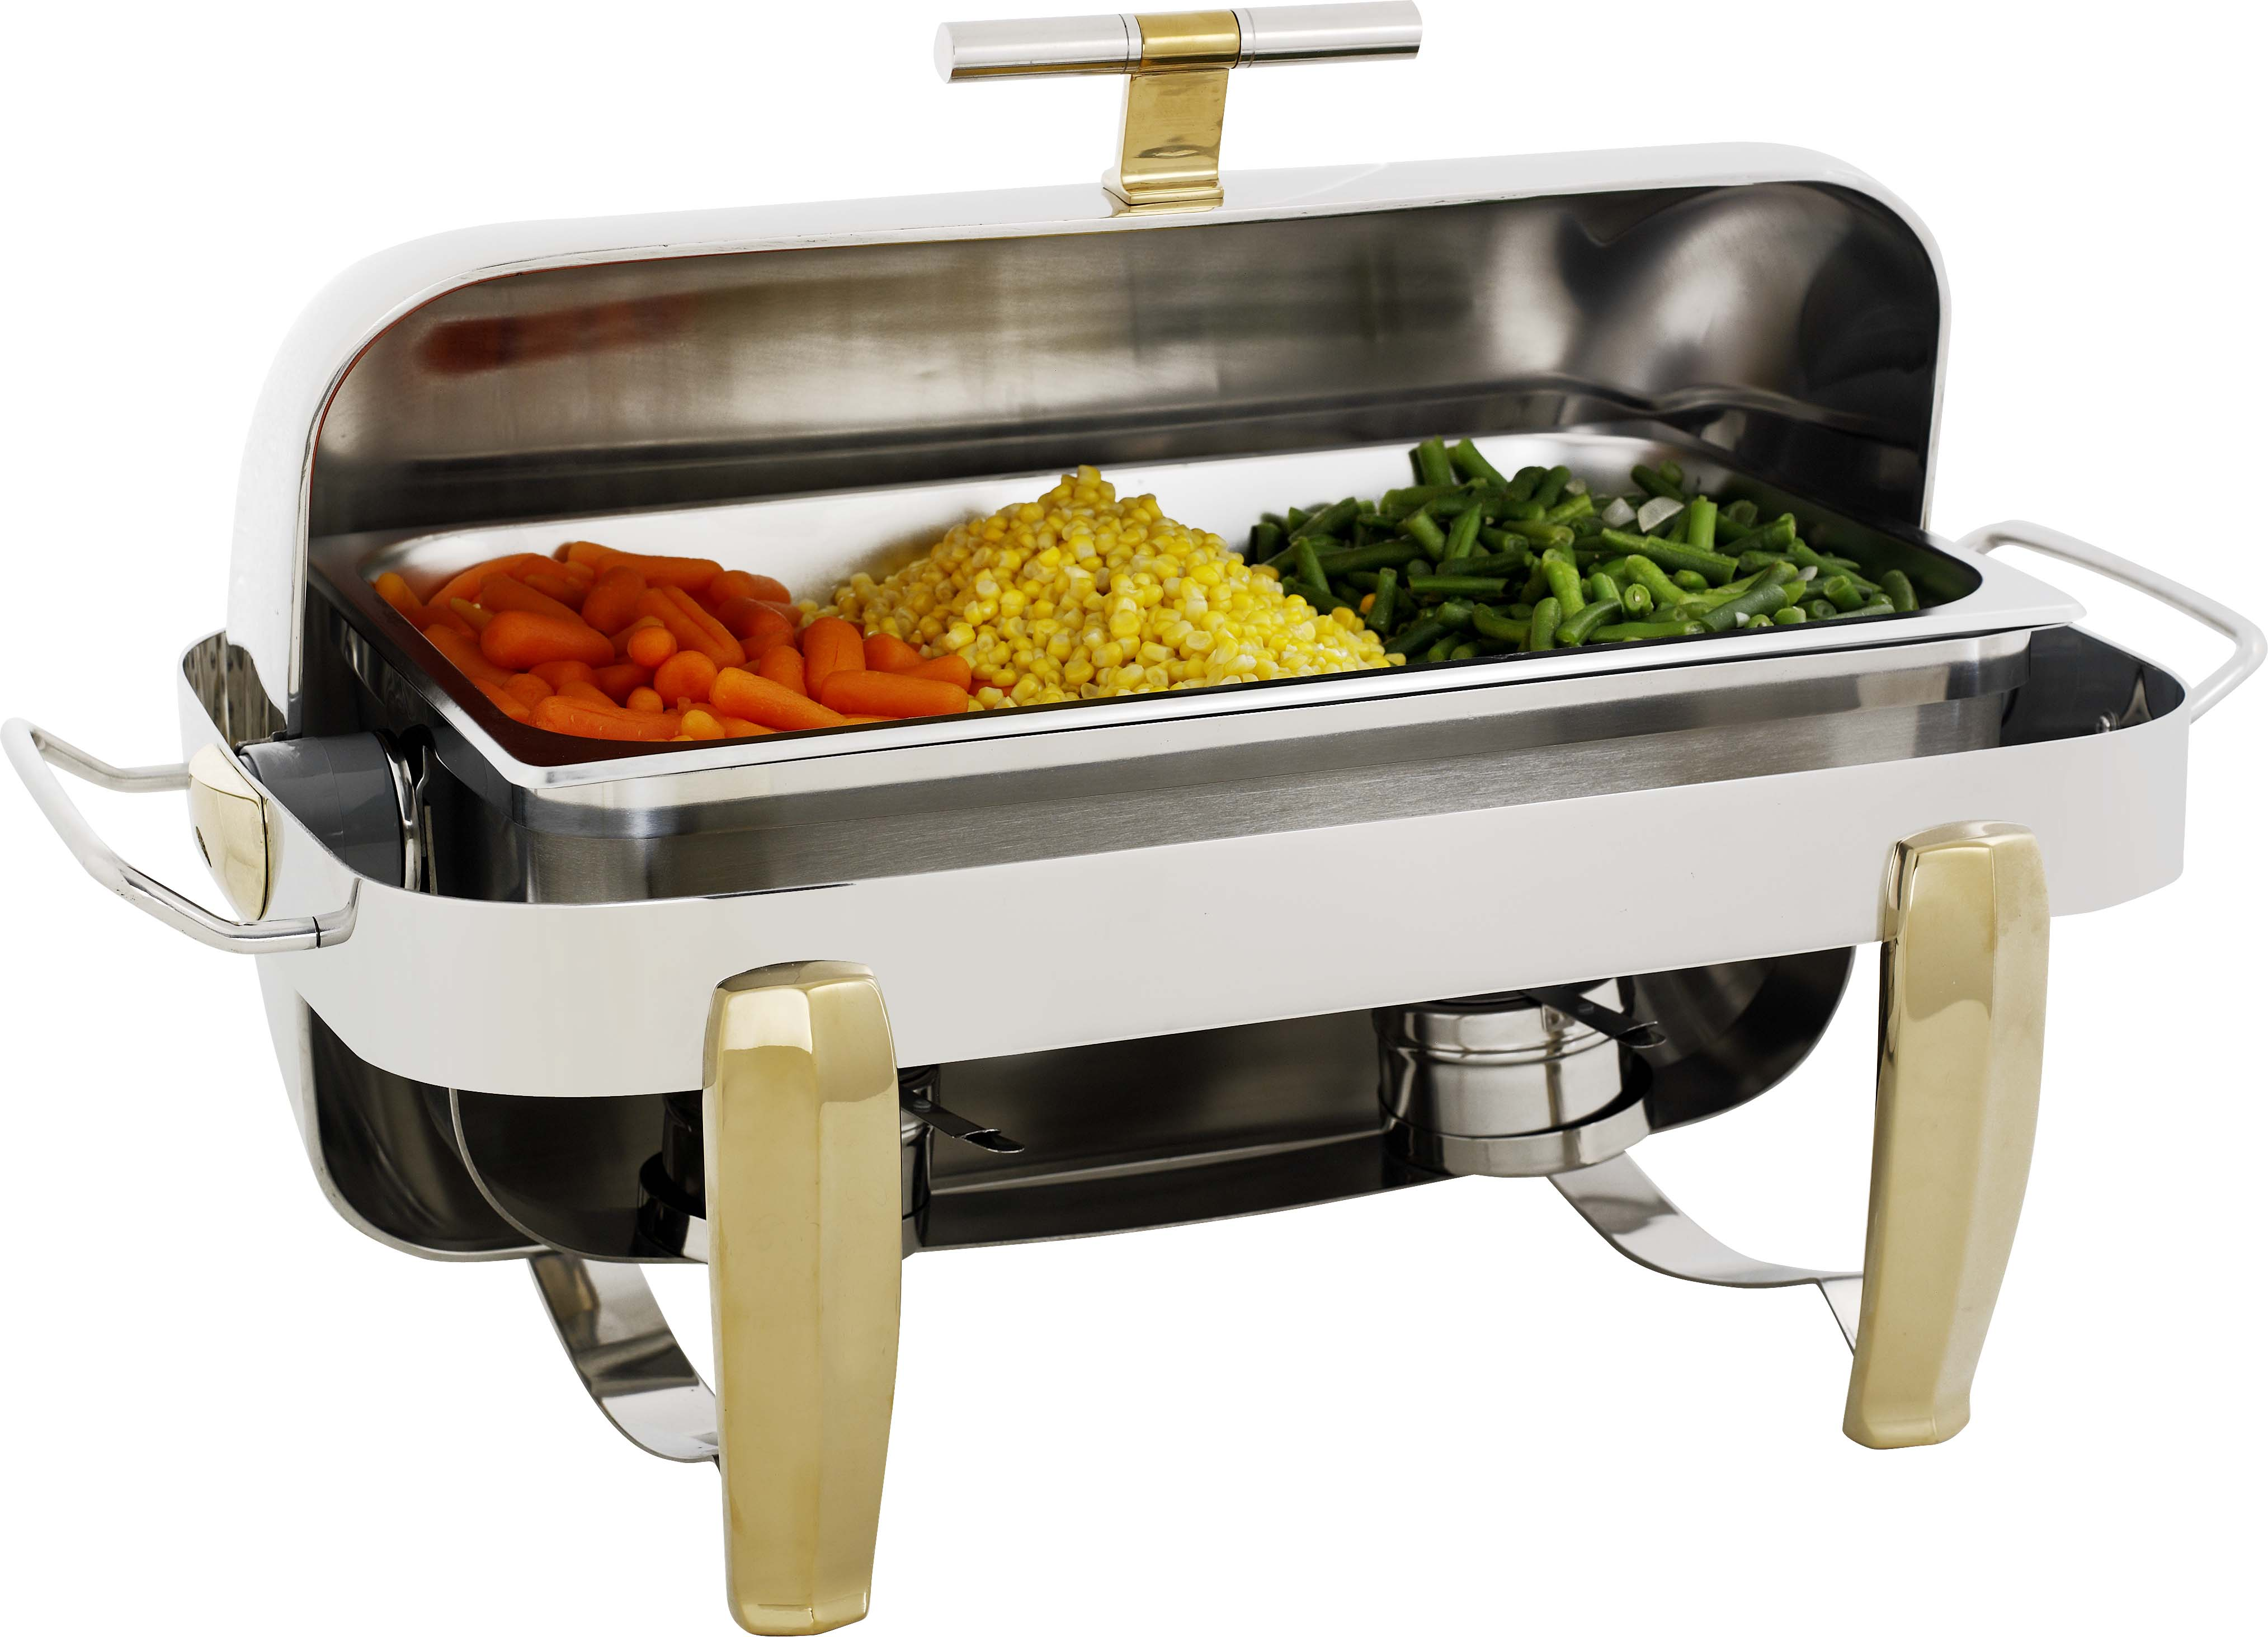 CHAFING DISH DELUX-ROLLTOP (RECTANGULAR) 7.5Lt